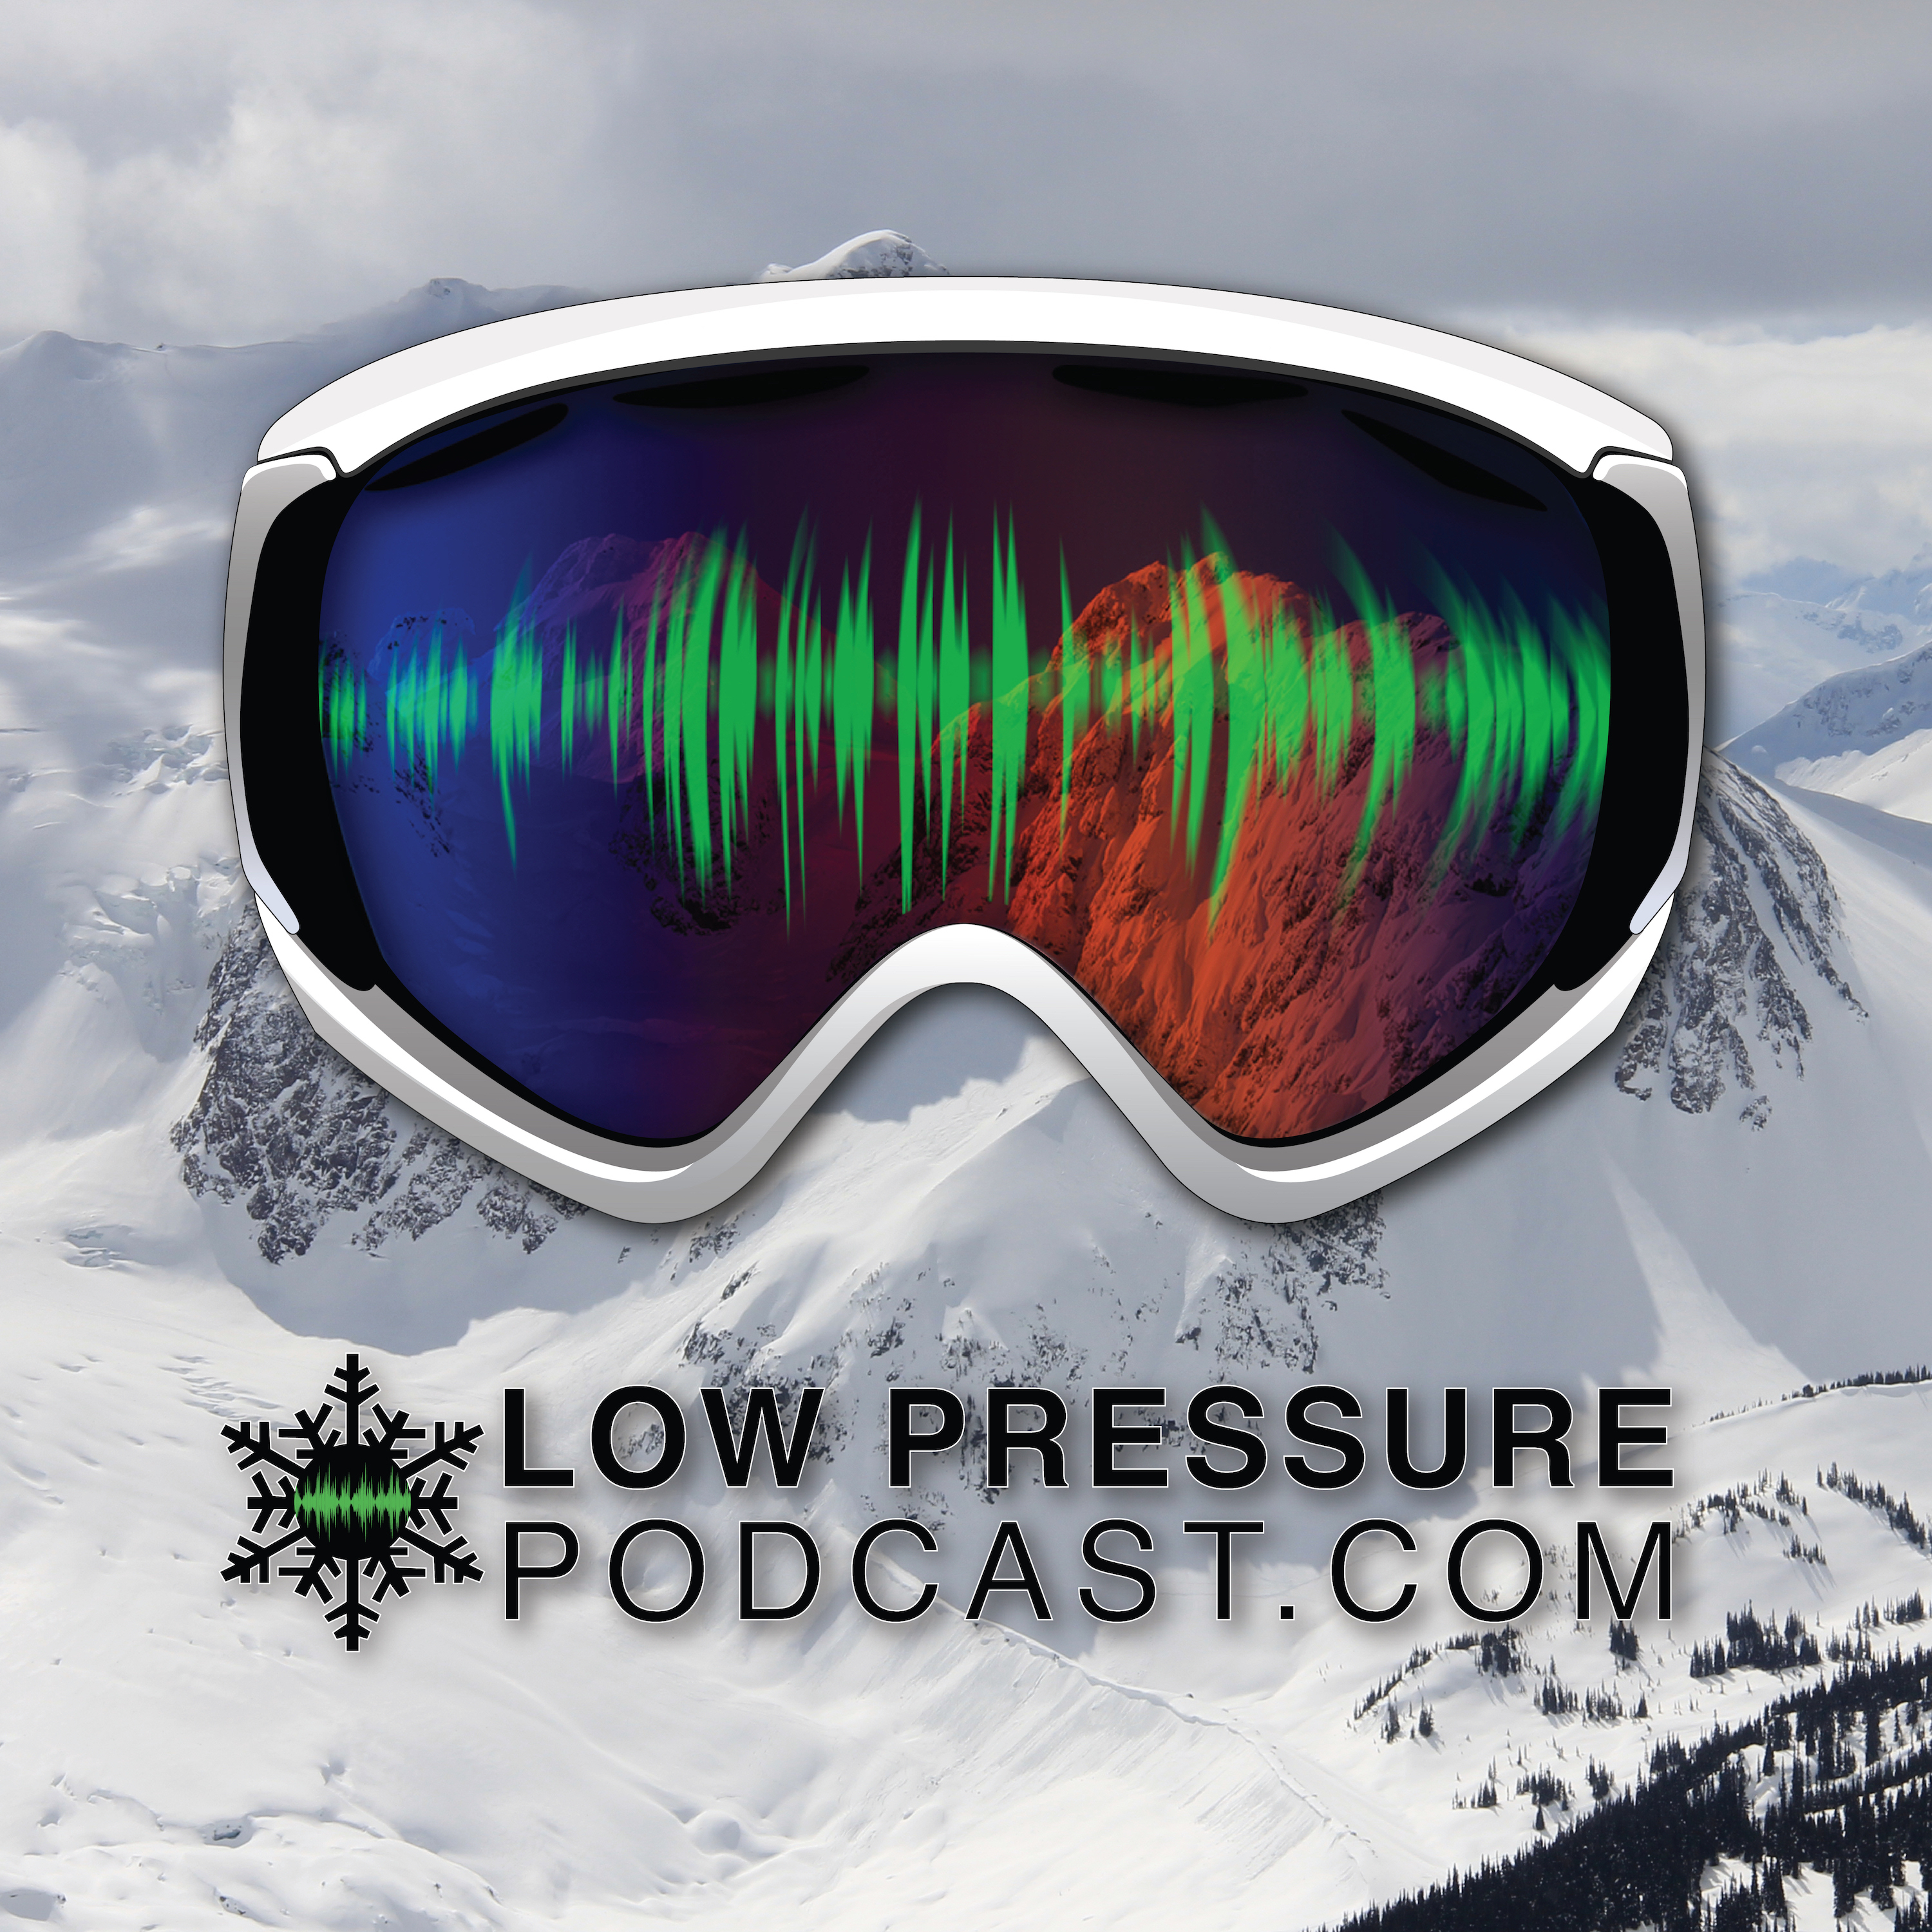 Low Pressure Podcast: The Podcast for Skiers show art